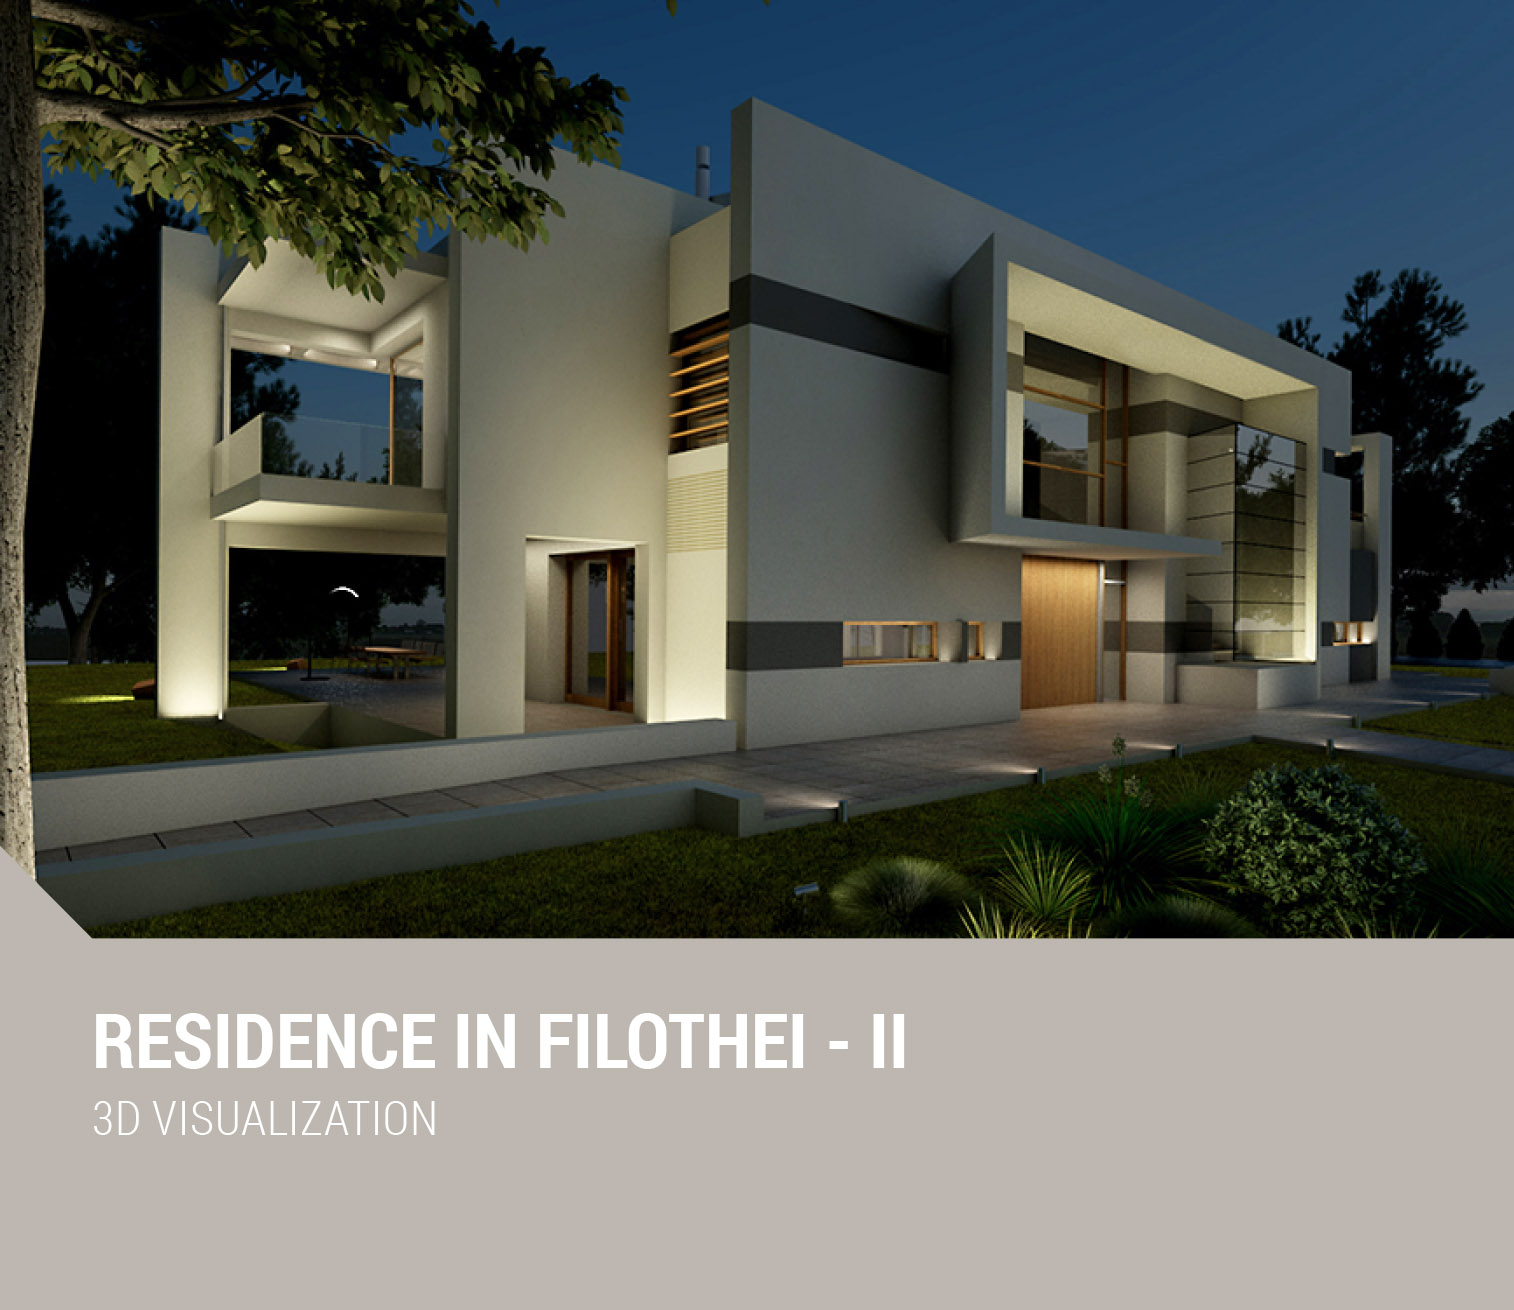 Schema Dimitra Chrona designer, creative director, architectural, 3D visualization, 3D Rendering, branding websites, digital, graphic design, interior design, real estate, luxury property, staging, museum, virtual, art, brochures, exhibitions, logotype, logo, Canada Quebec Montreal Athens Greece schema design filothei residence ii small.jpg